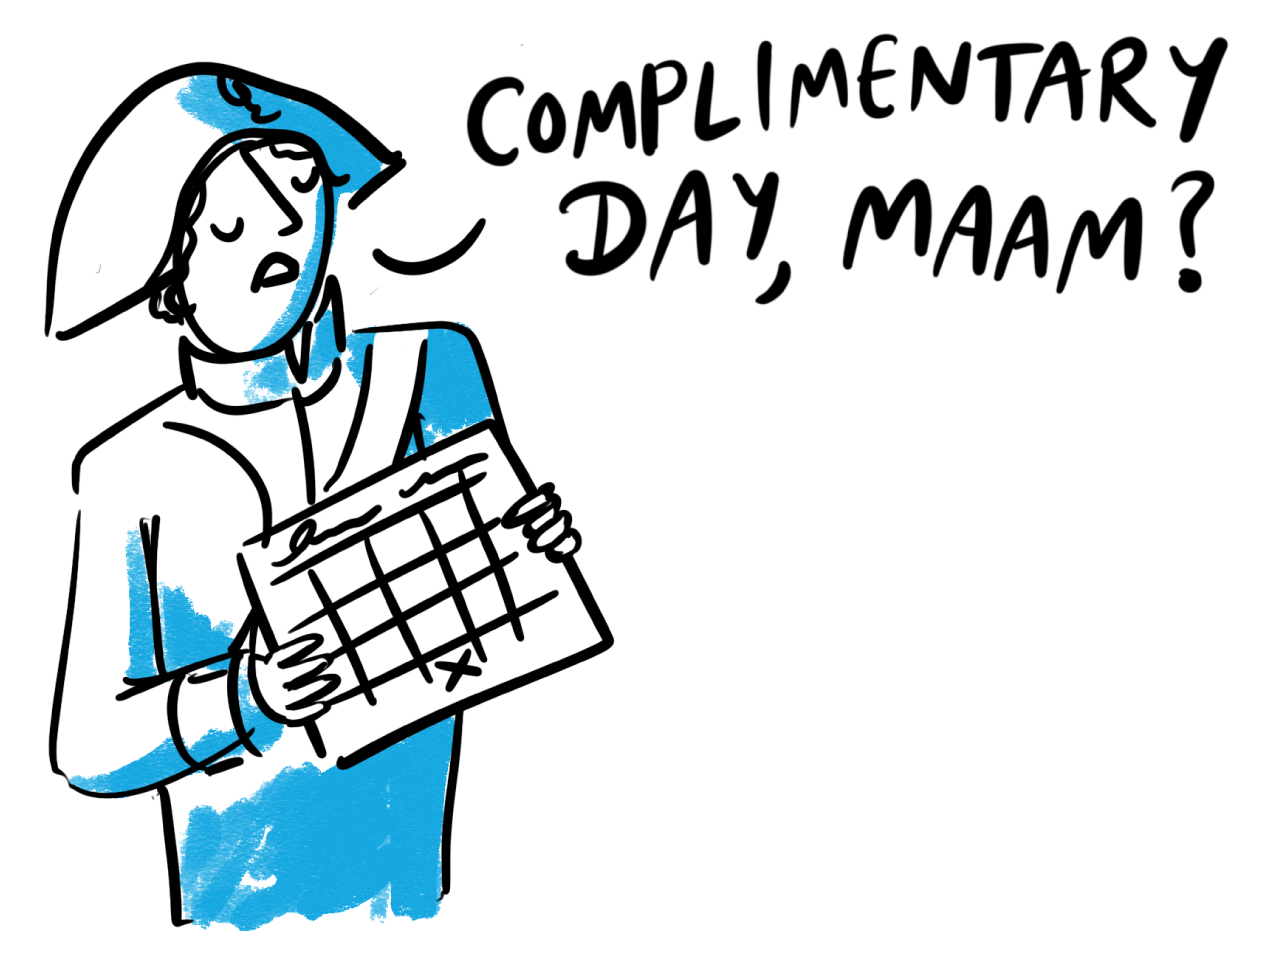 Complimentary days